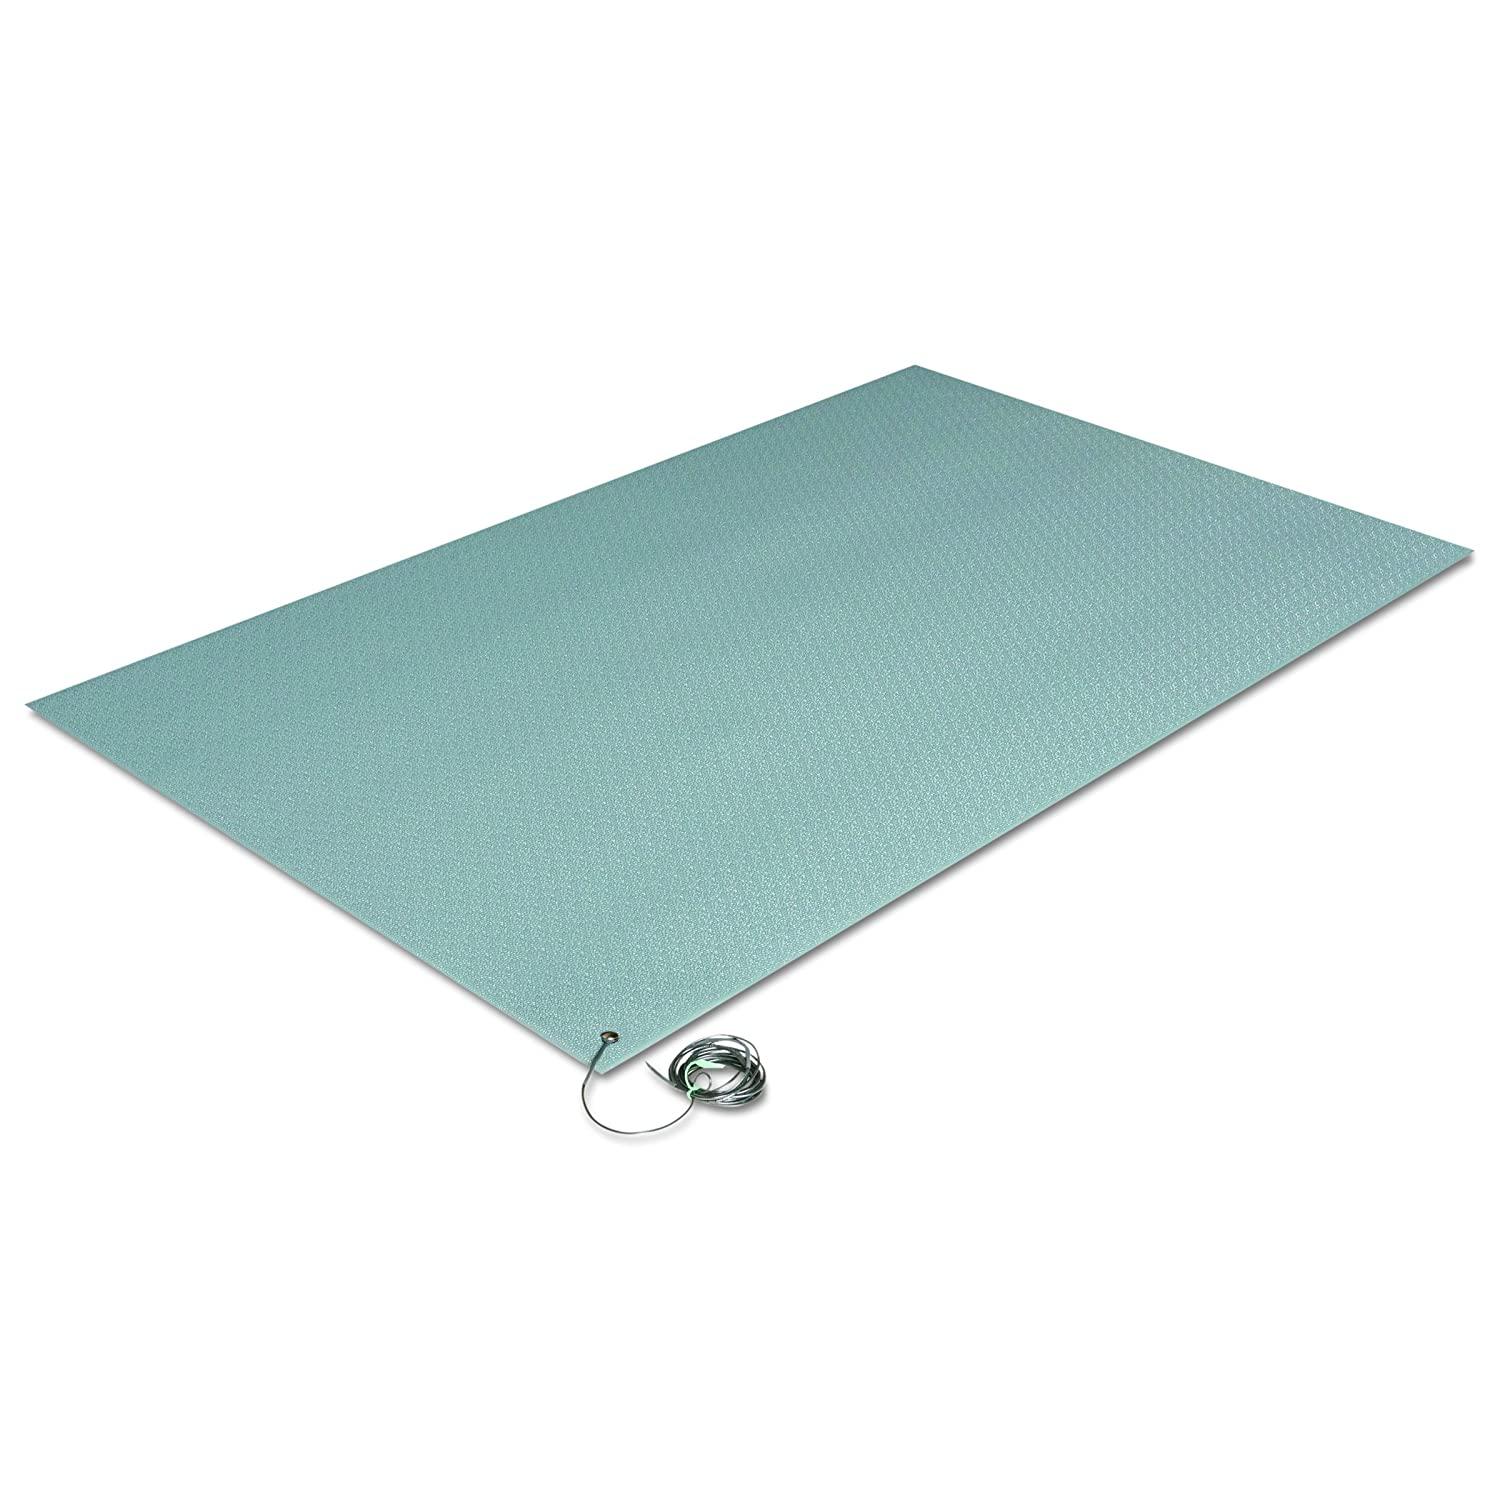 Crown Antistatic Comfort-King Mat, Sponge, 24 x 60, Gray (ZC0025GY) Crown Mats and Matting COUCWNZC0025GY